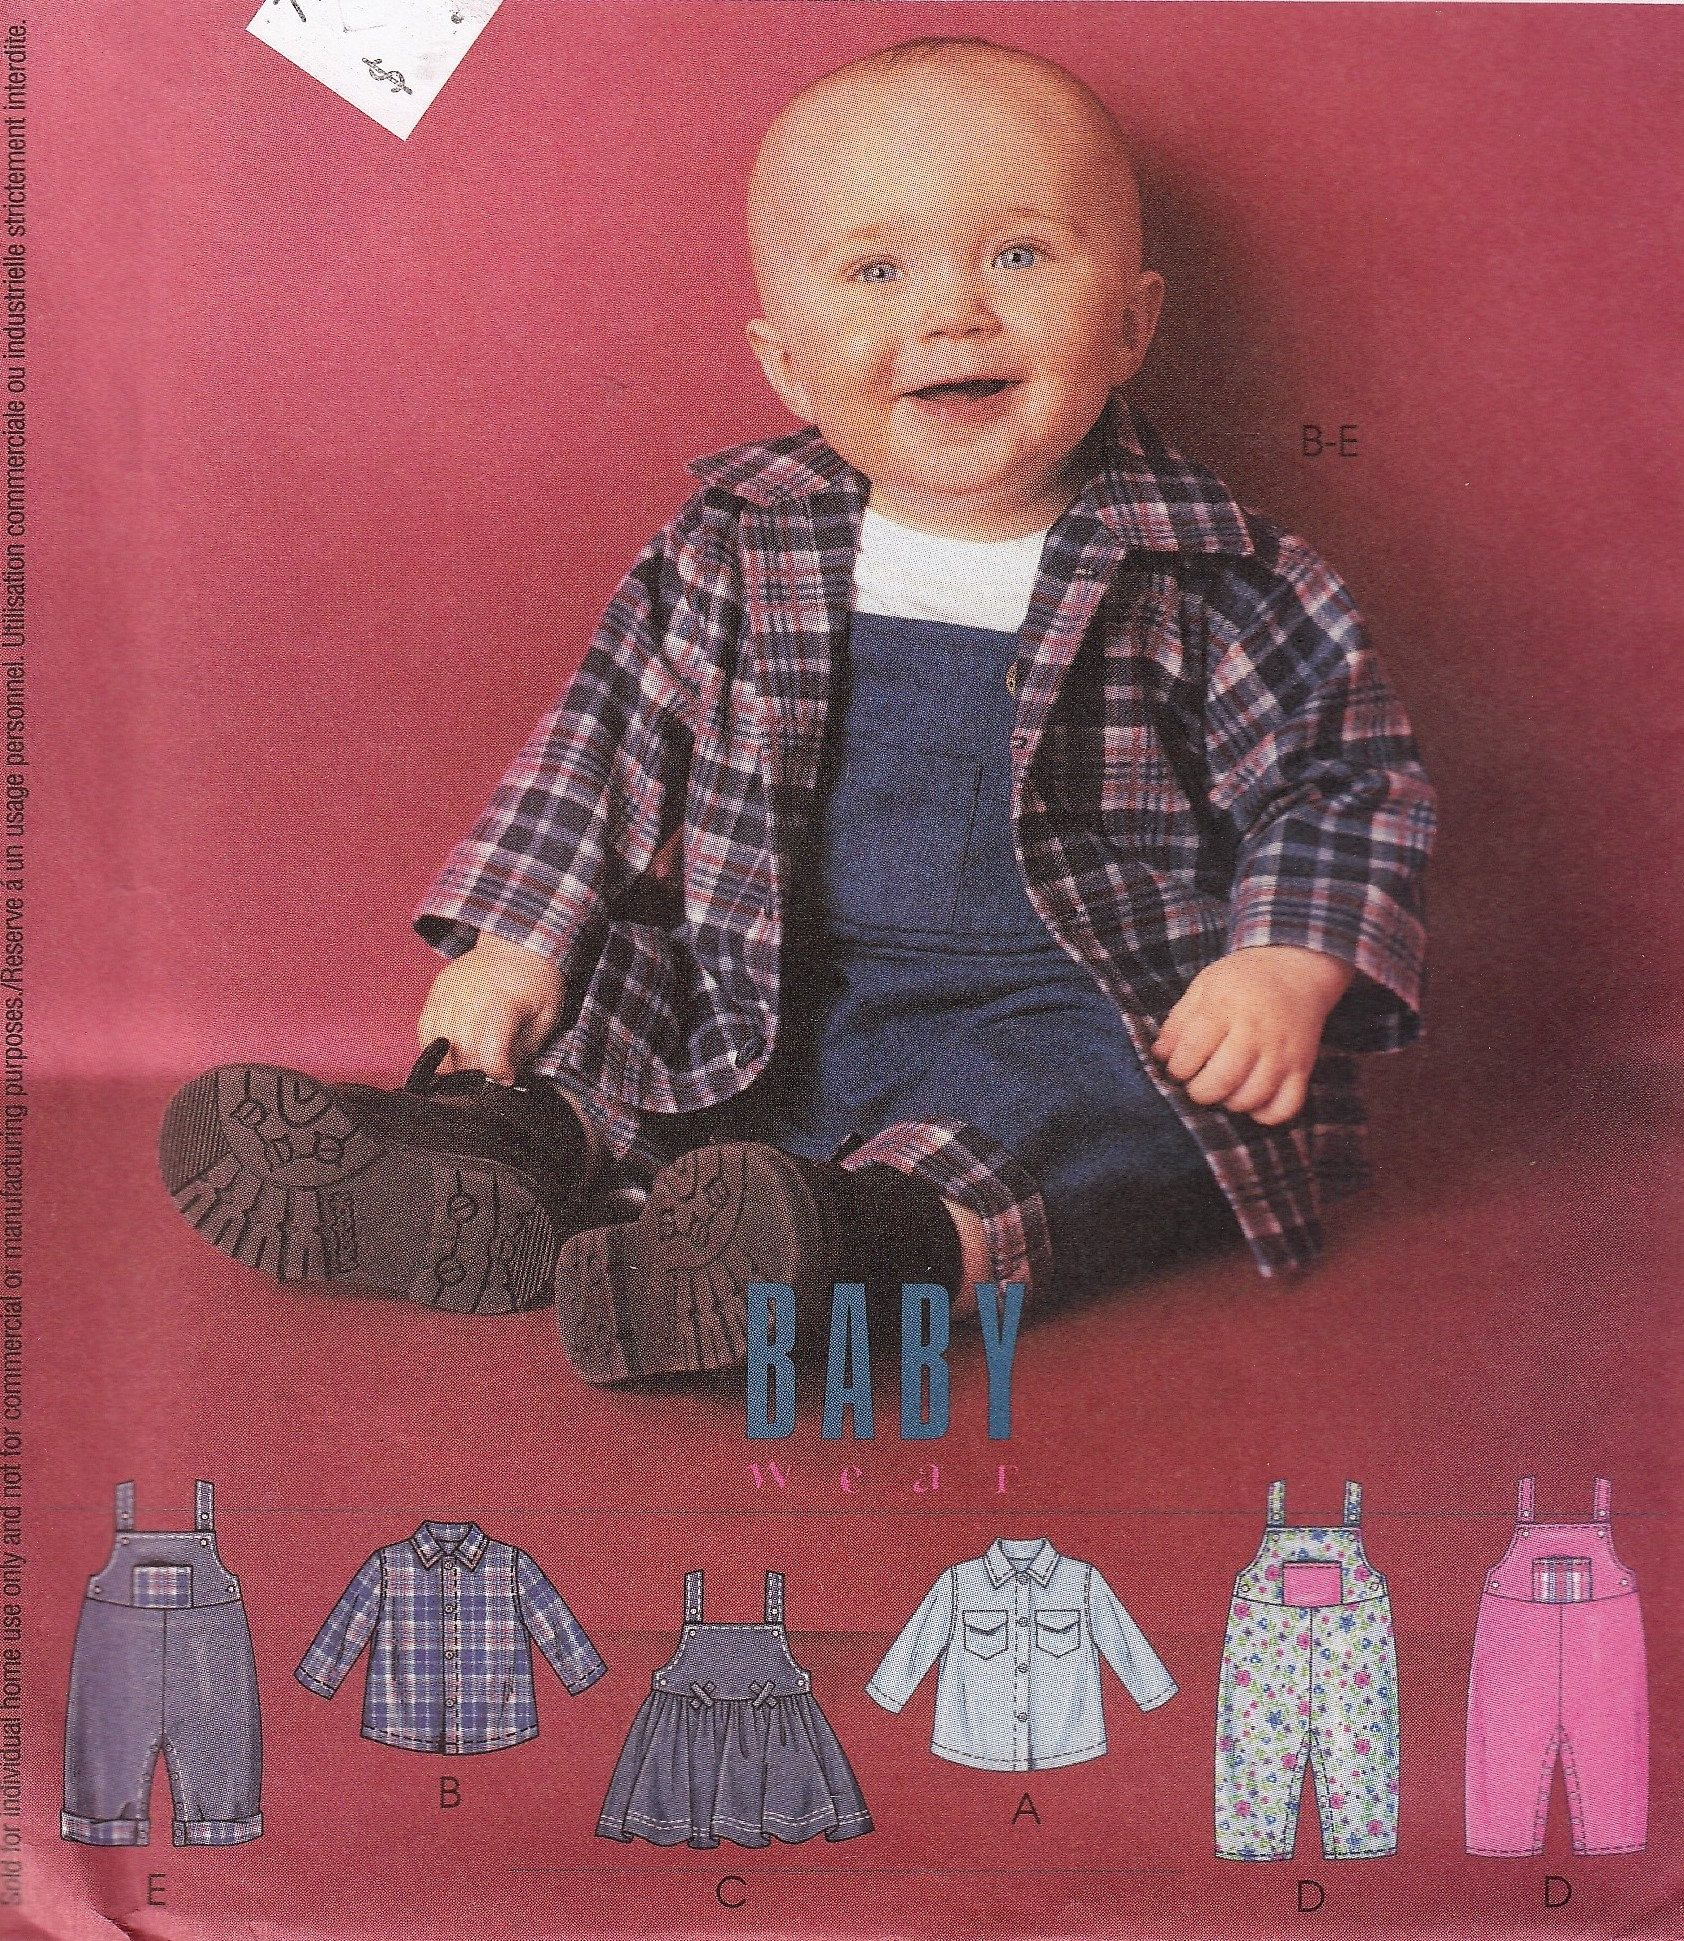 Ed sheeran flannel shirt  Infants and Babies Button Down Tops Overalls and Dress  Size SML